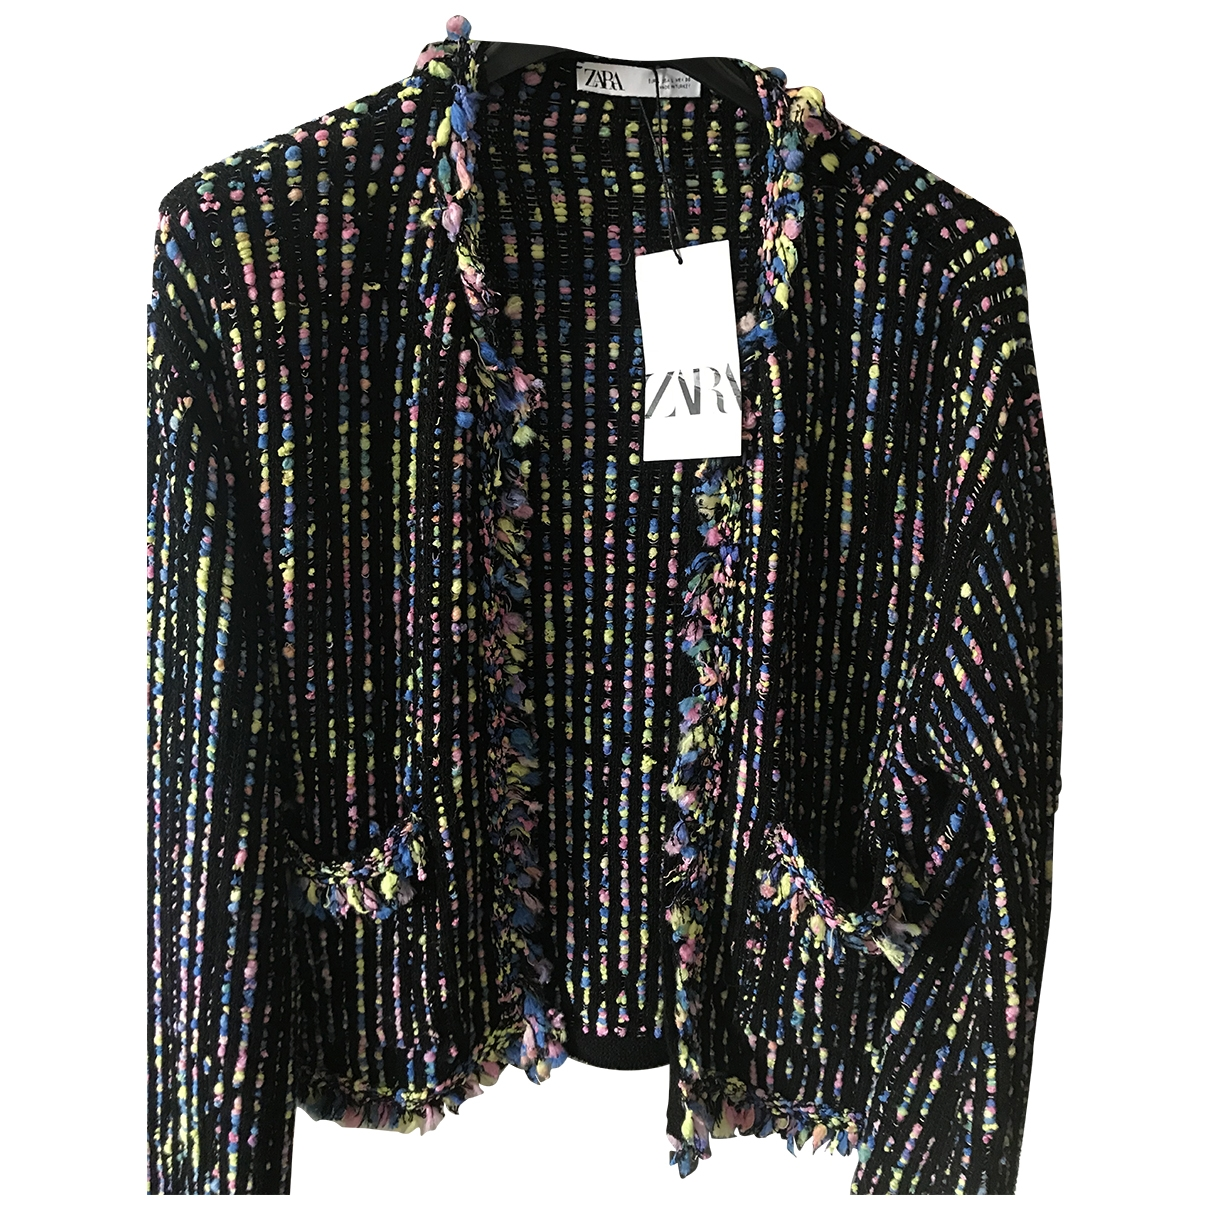 Zara \N Multicolour jacket for Women L International